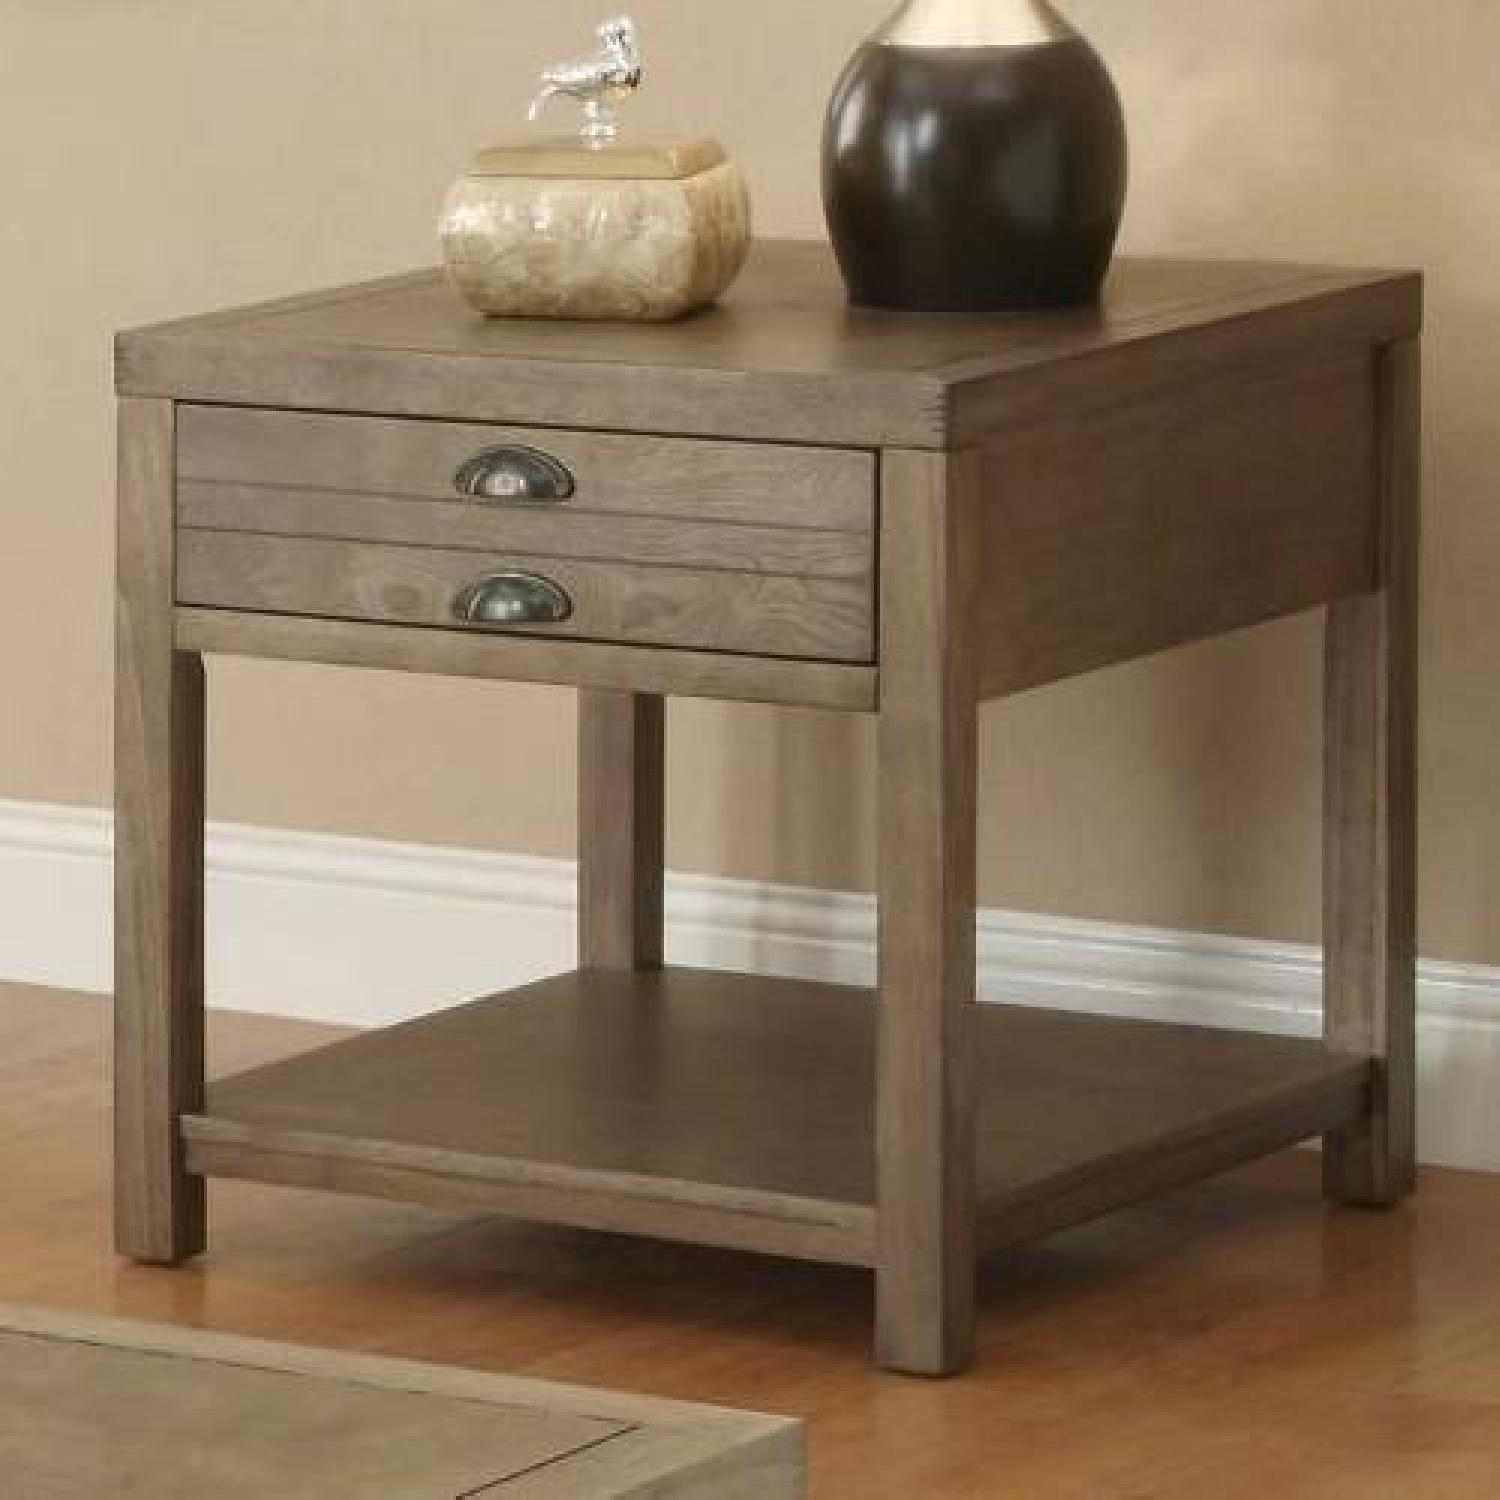 Drirtwood Craftman End Table-0